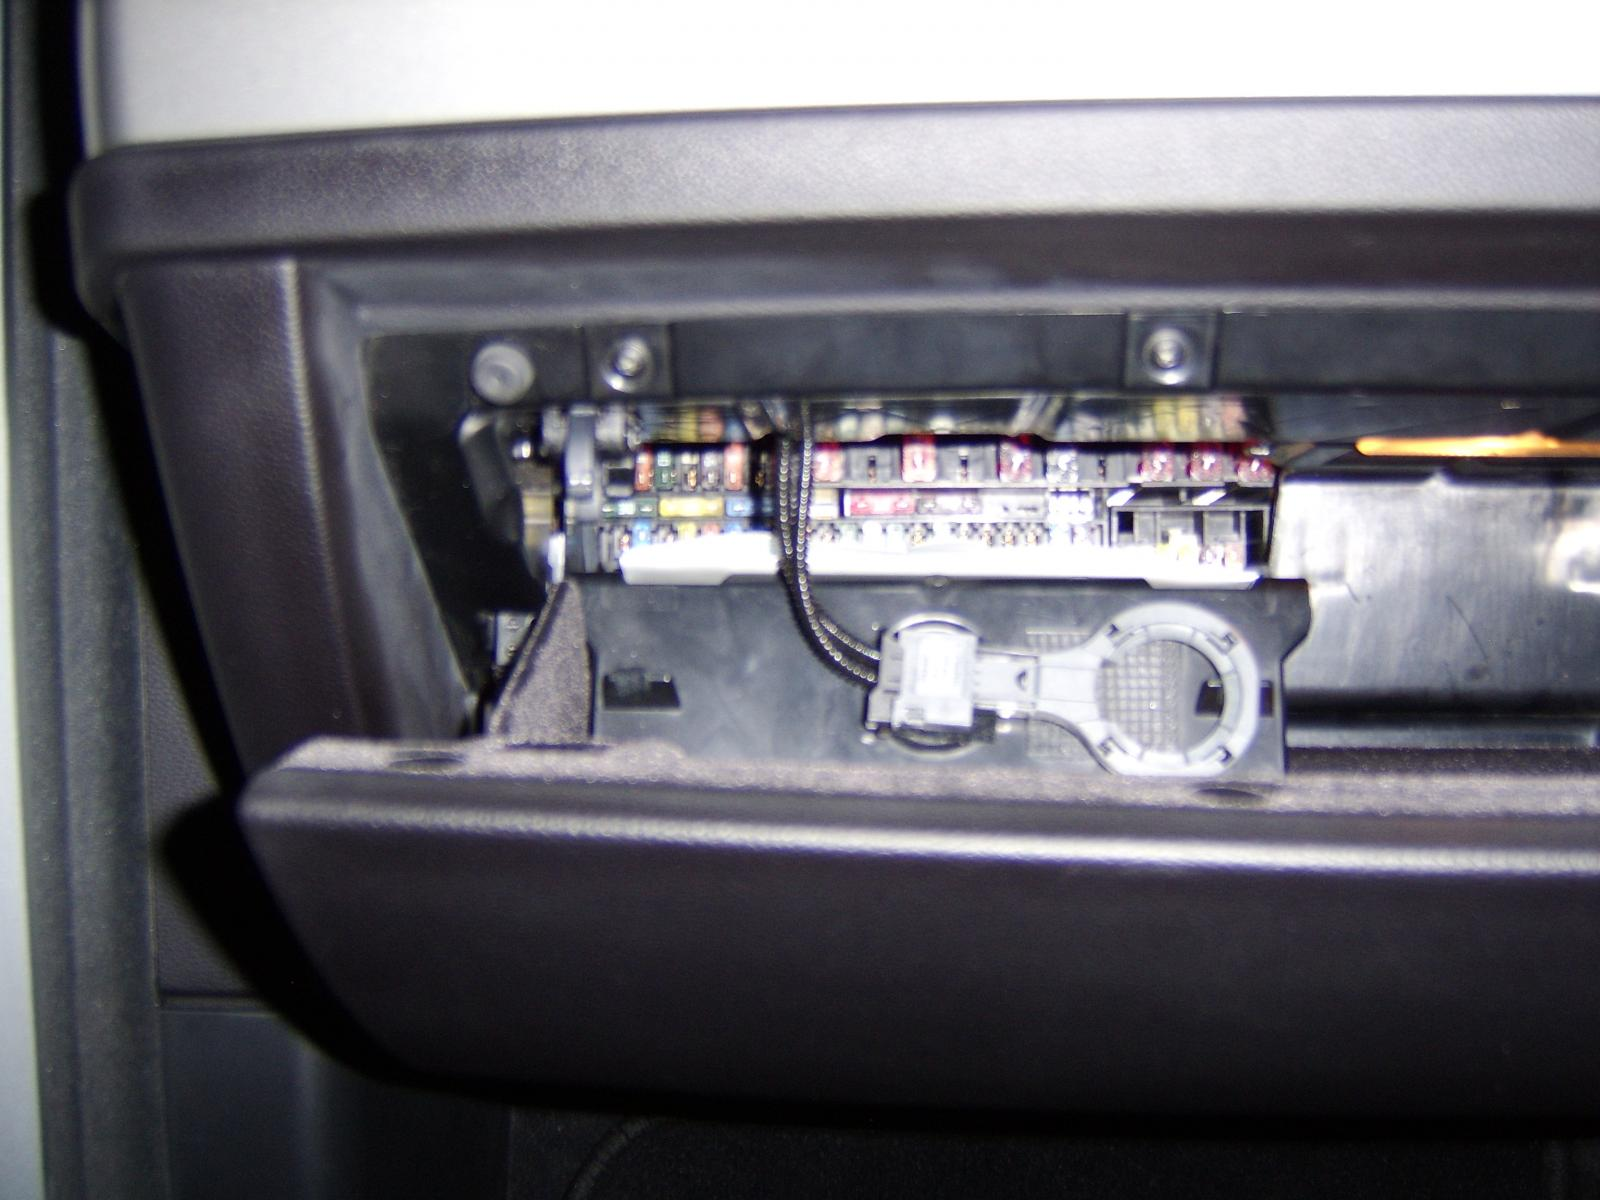 location of fuse box for cigarett lighter - bimmerfest ... 2004 bmw z4 fuse box location #8